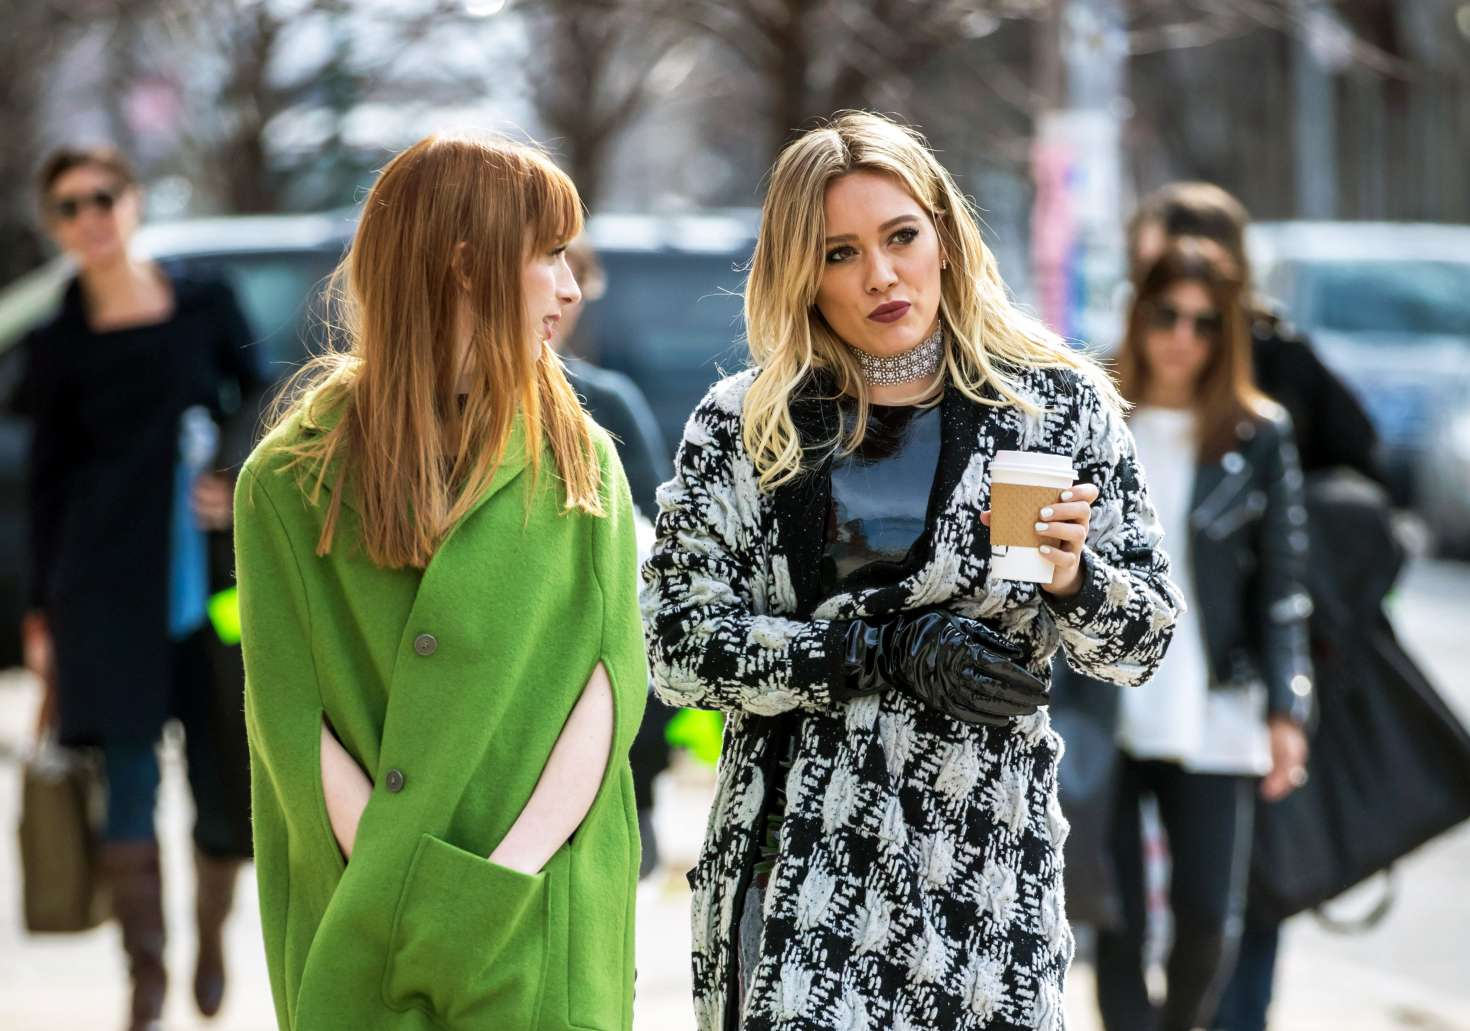 Hilary Duff on the set of 'Younger' in NY